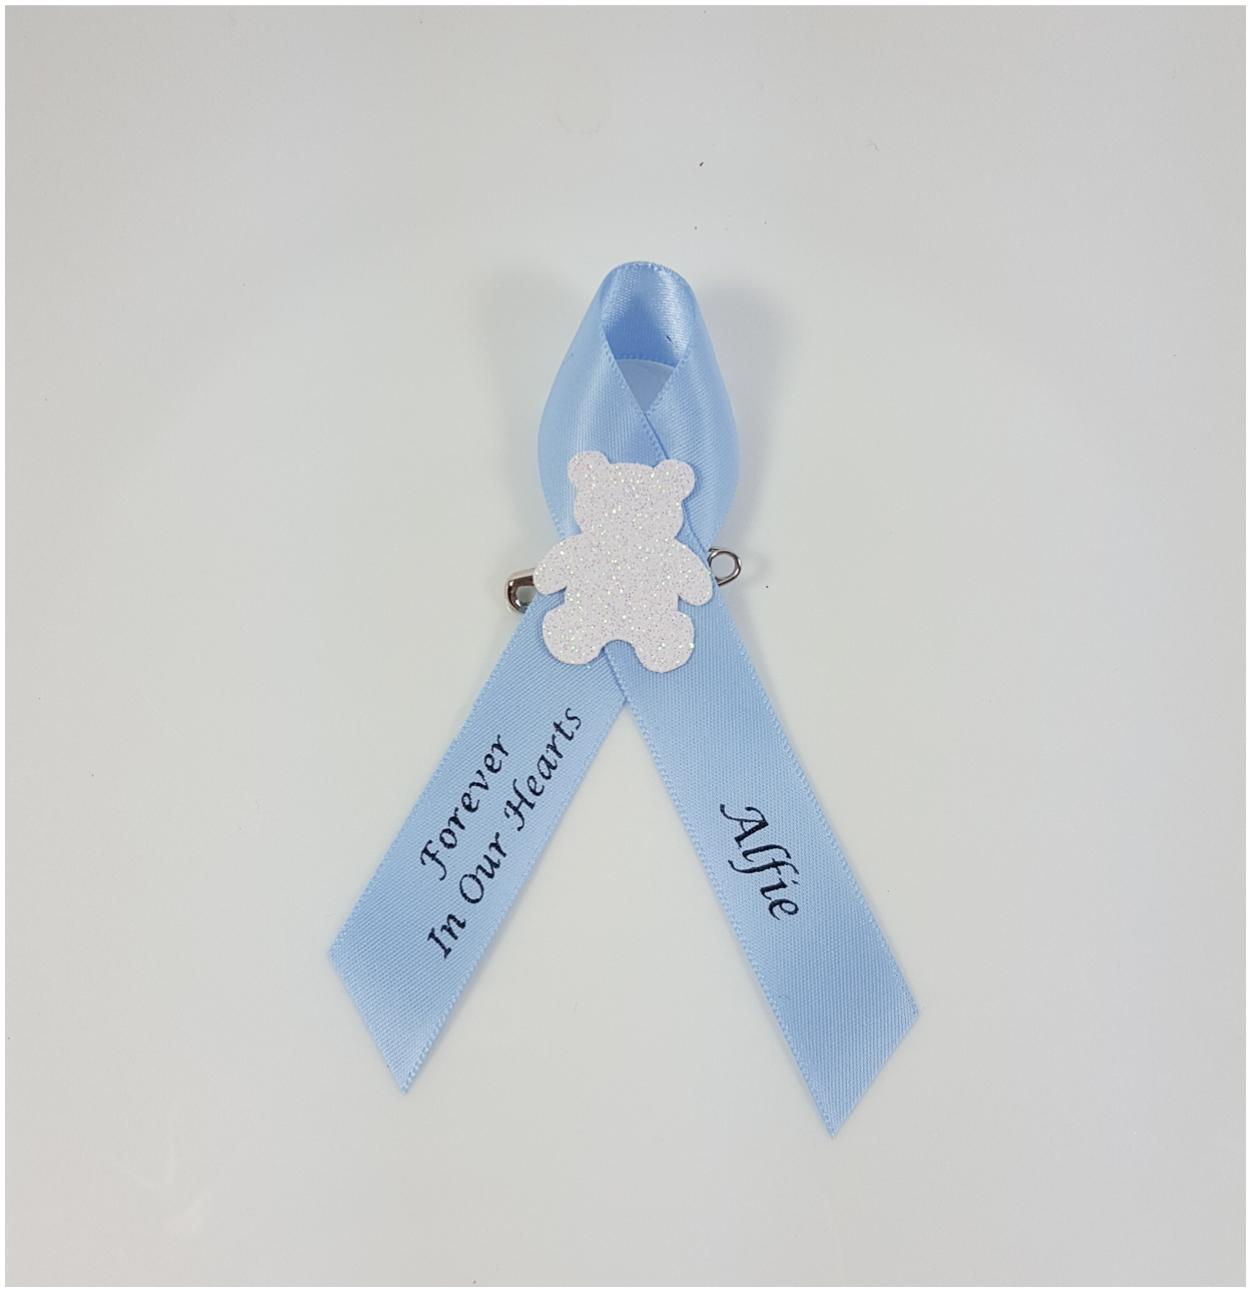 Baby Loss Funeral memorial ribbons